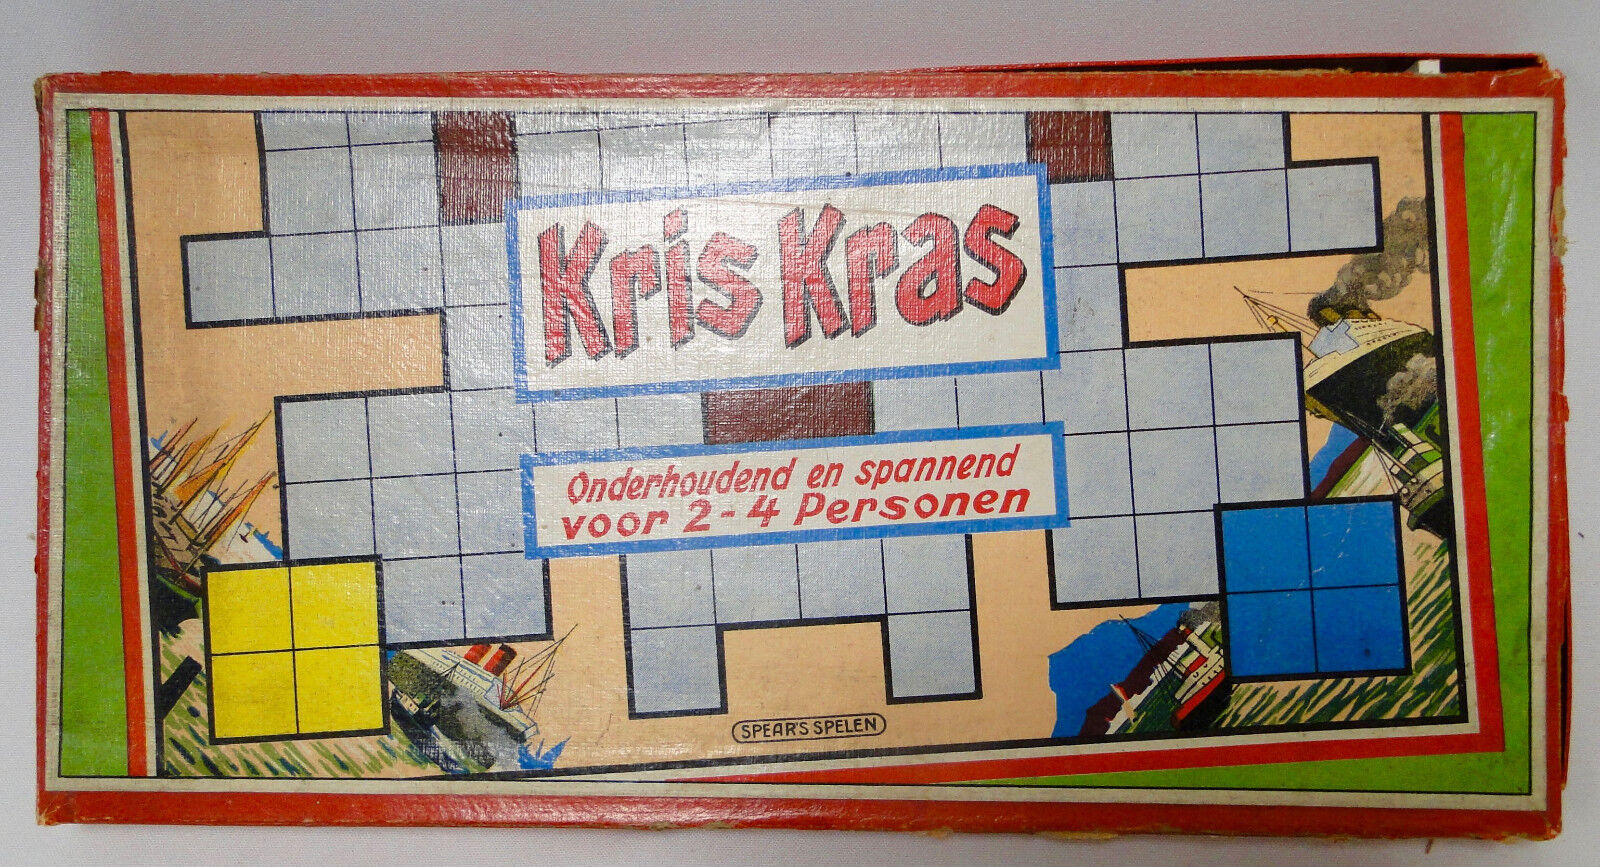 Antique Kris Kras Spear's board game, 1940 boats